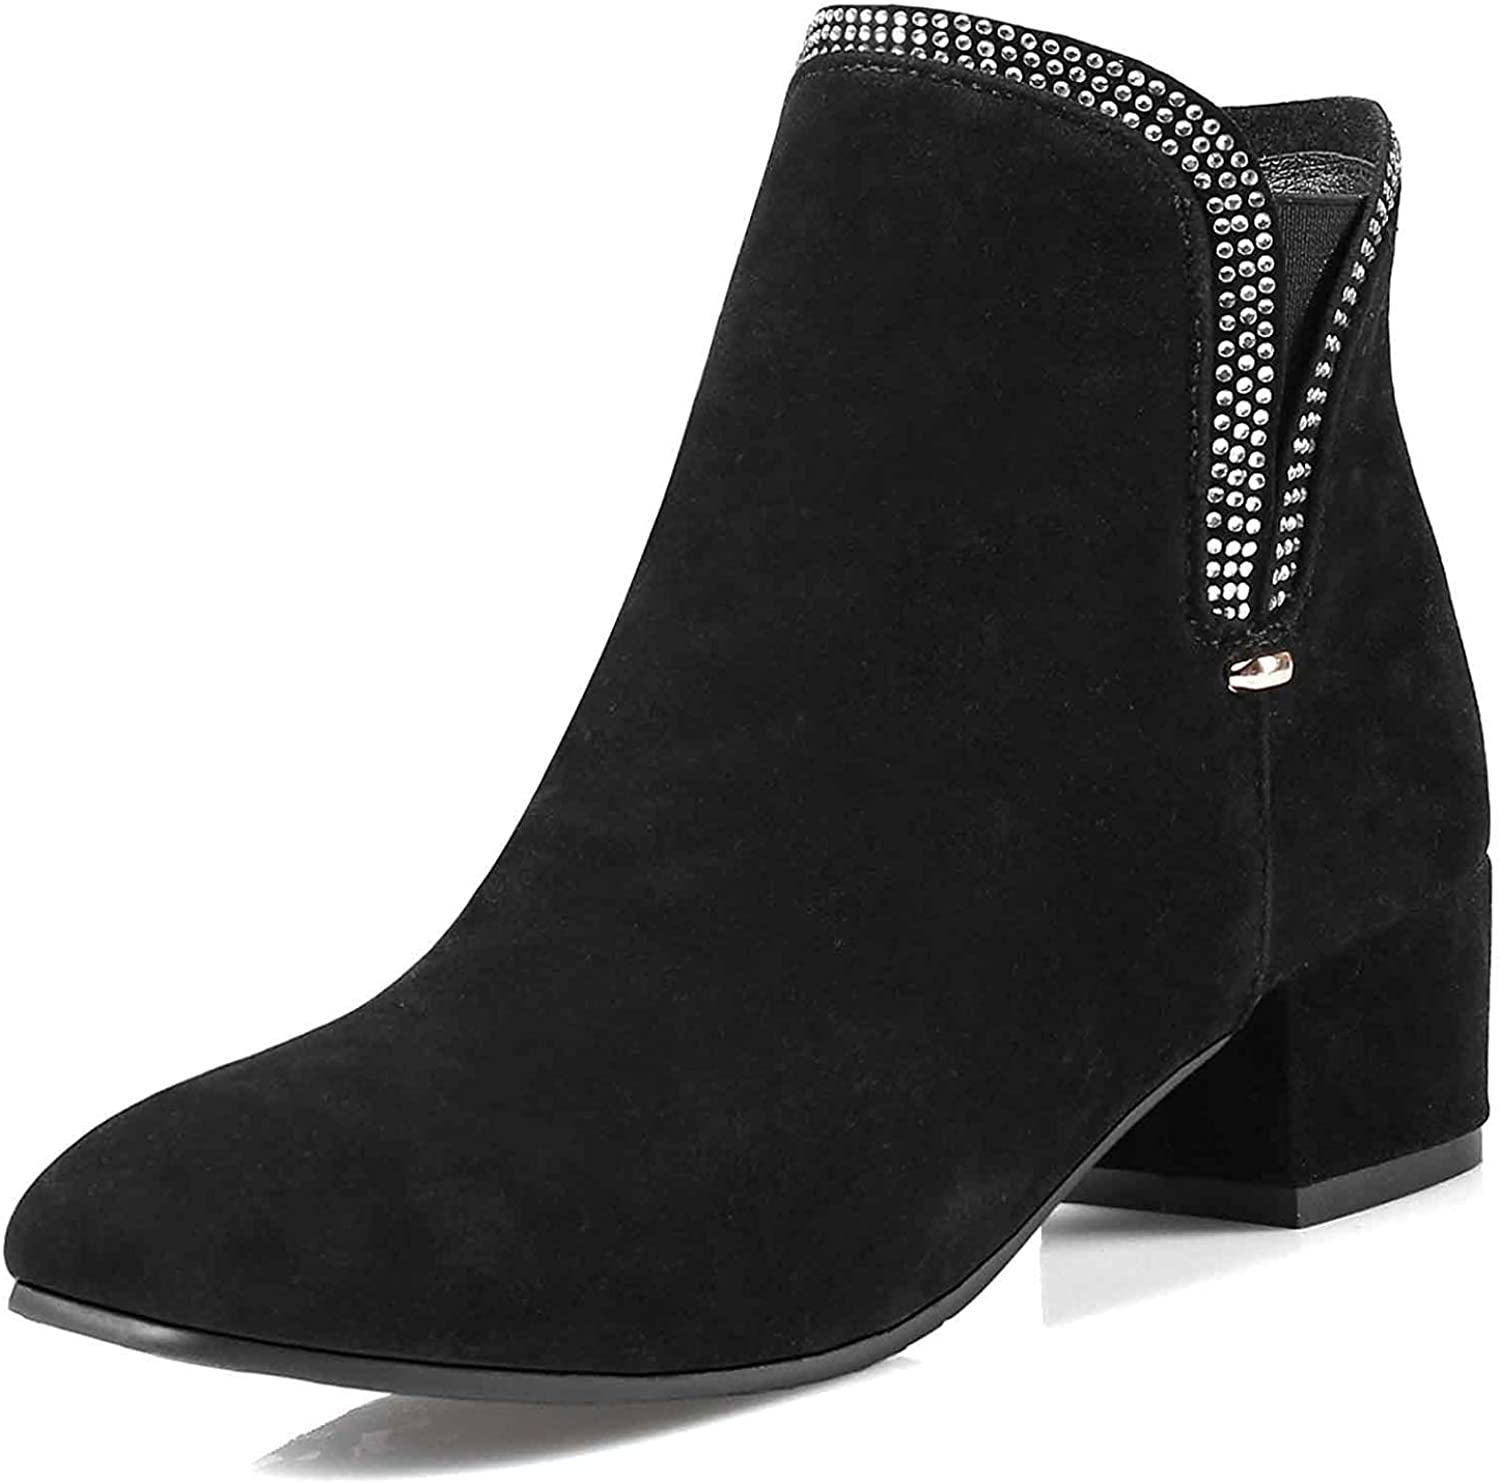 Unm Women's Chelsea Square Toe Booties with Zipper - Rhinestones Outdoor Combat - Low Chunky Heel Ankle Boots